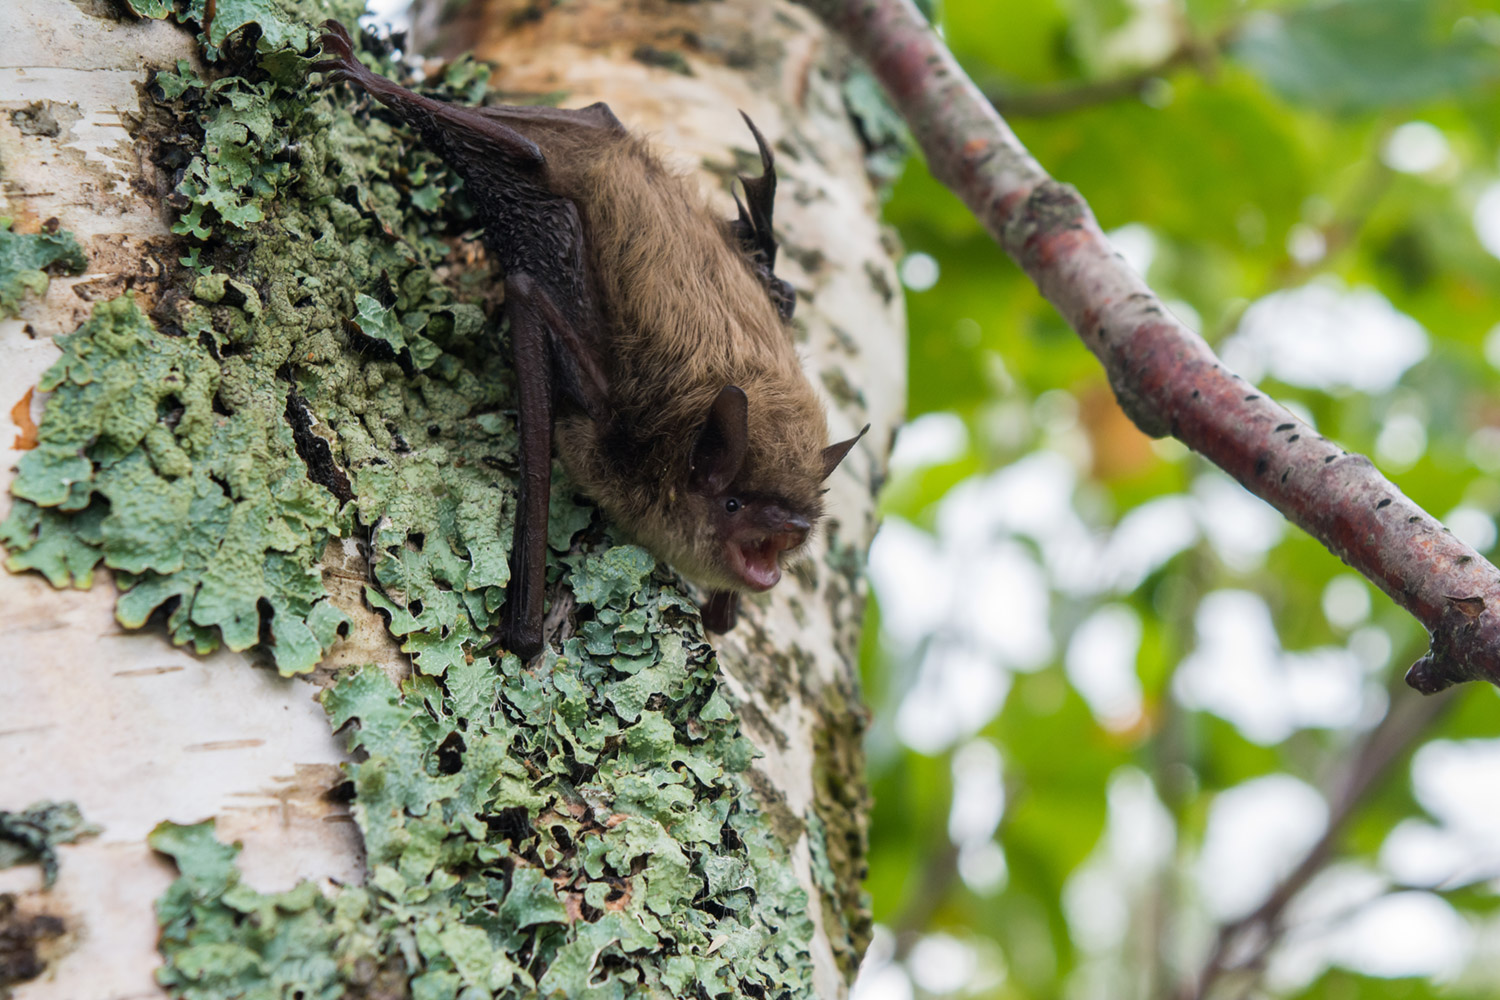 native council of pei - aboriginal fund for species at risk - afsar - bat survey